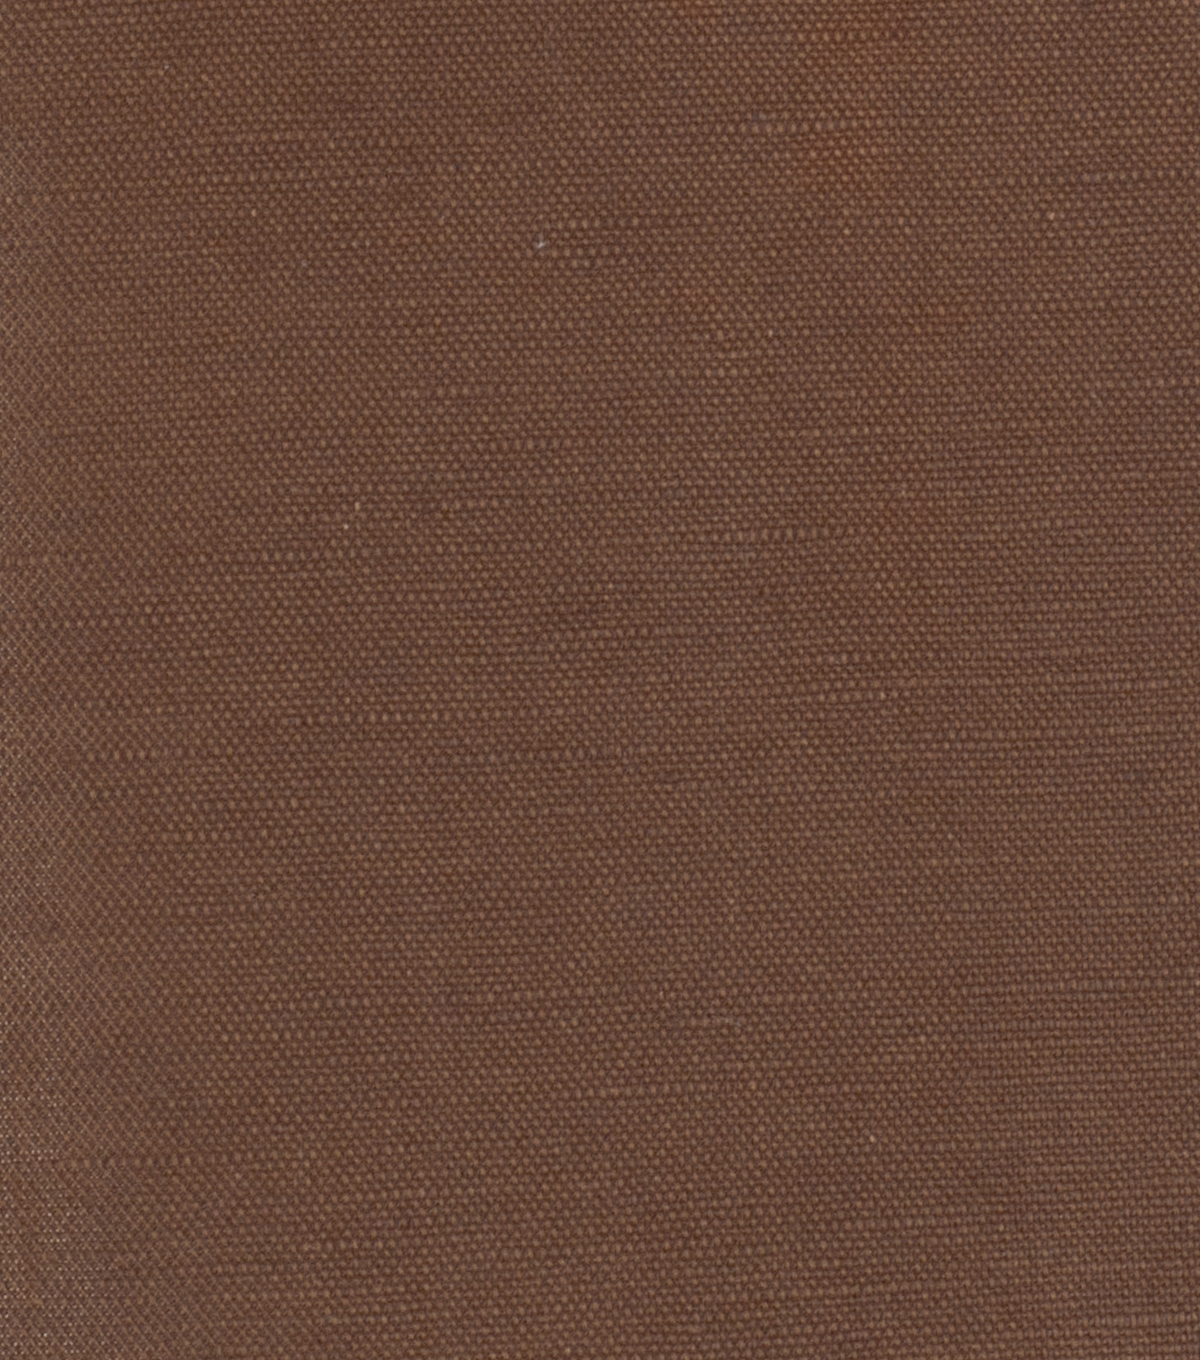 "Home Decor 8""x8"" Fabric Swatch-Signature Series Sonoma Linen-Cotton Umber"